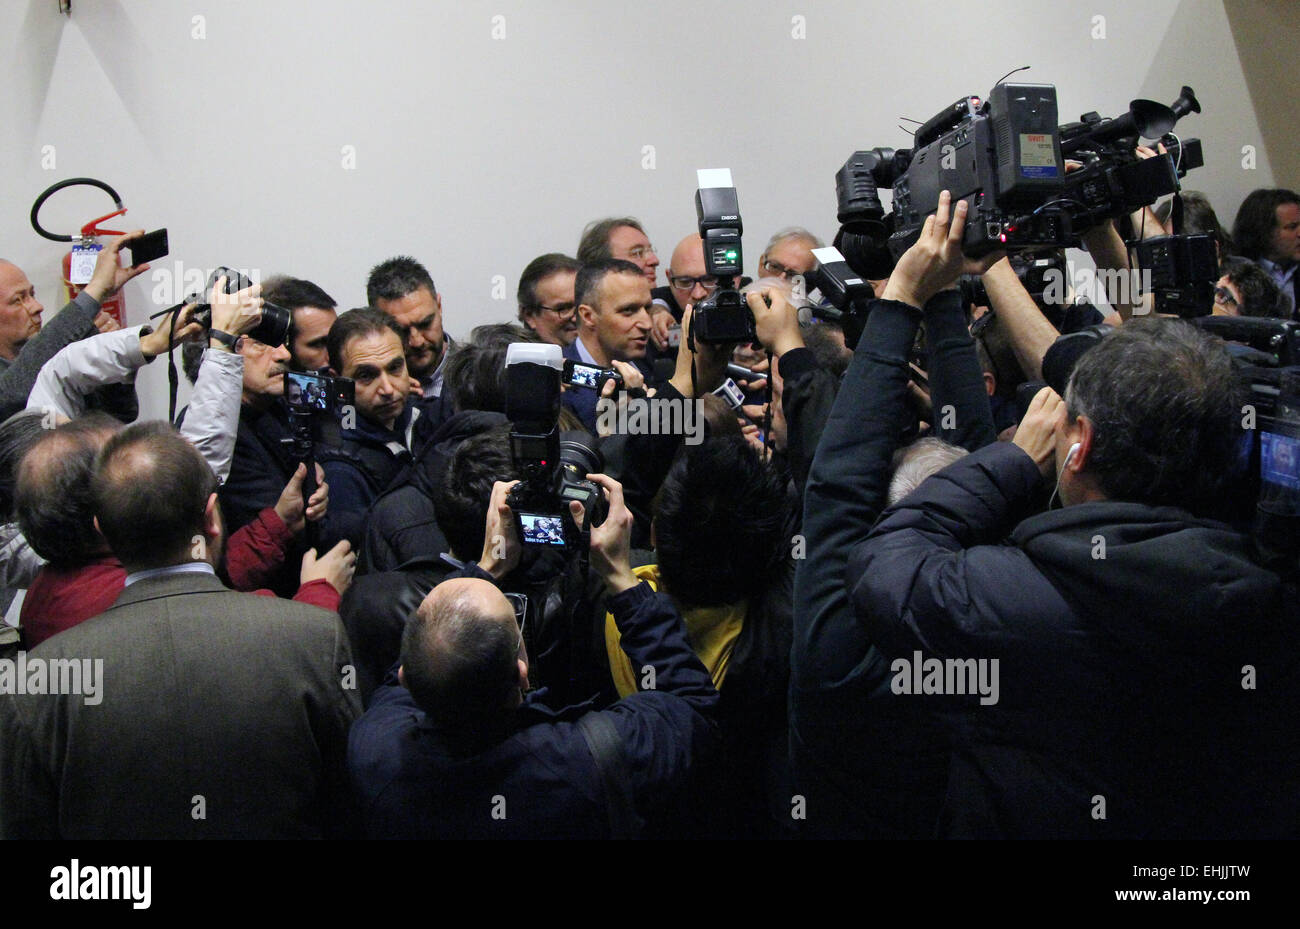 Verona, Italy. 14th Mar, 2015. Verona's Mayor Flavio Tosi speaks with journalist during his official candidacy - Stock Image